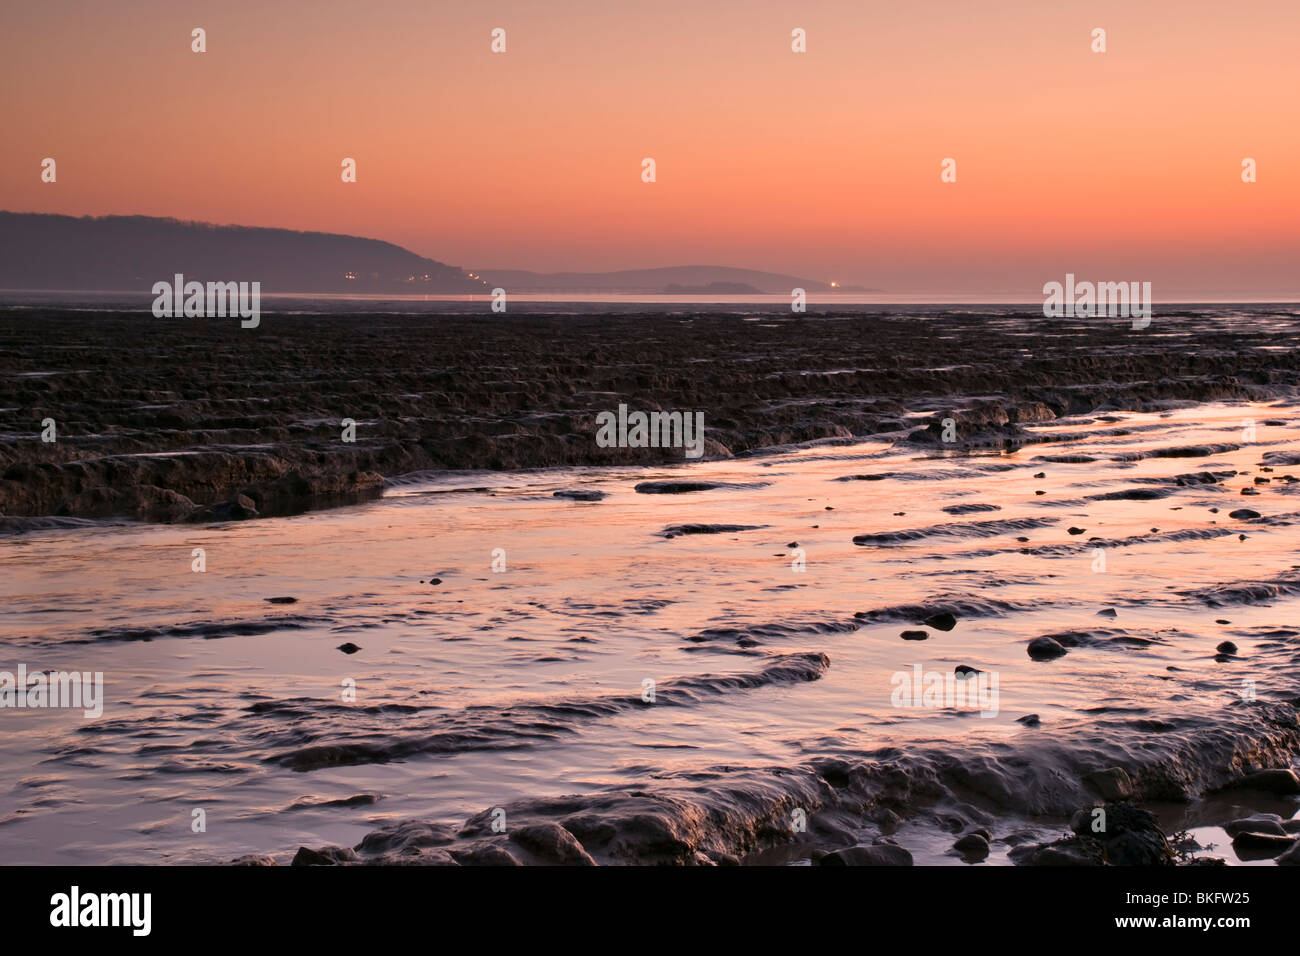 Sunset over the mudflats at Sandpoint, near Weston Super Mare, England with the lights at Weston just visible in - Stock Image